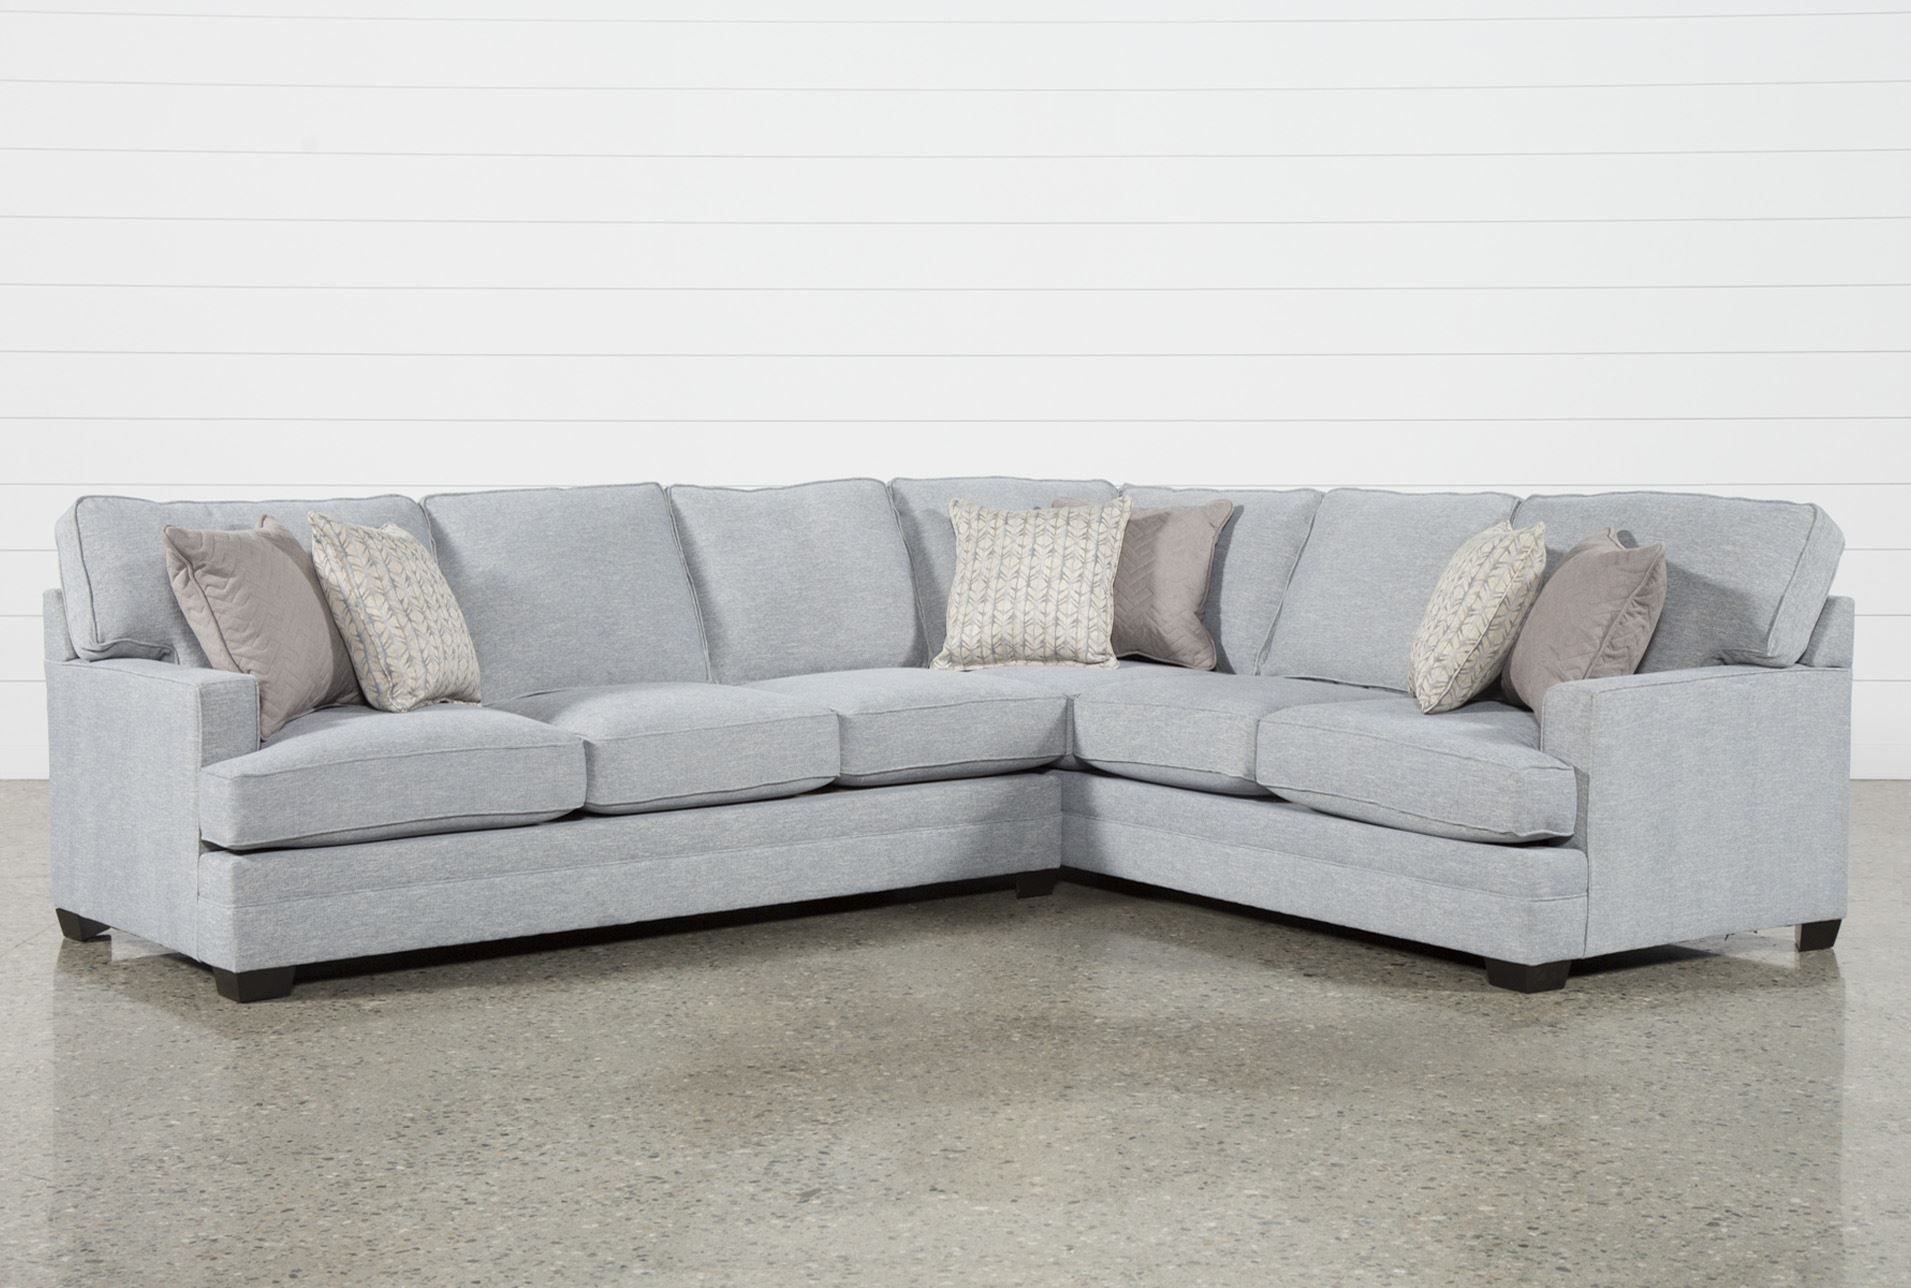 Josephine 2 Piece Sectional W/laf Sofa | Decorating And Interiors pertaining to Kerri 2 Piece Sectionals With Raf Chaise (Image 15 of 30)